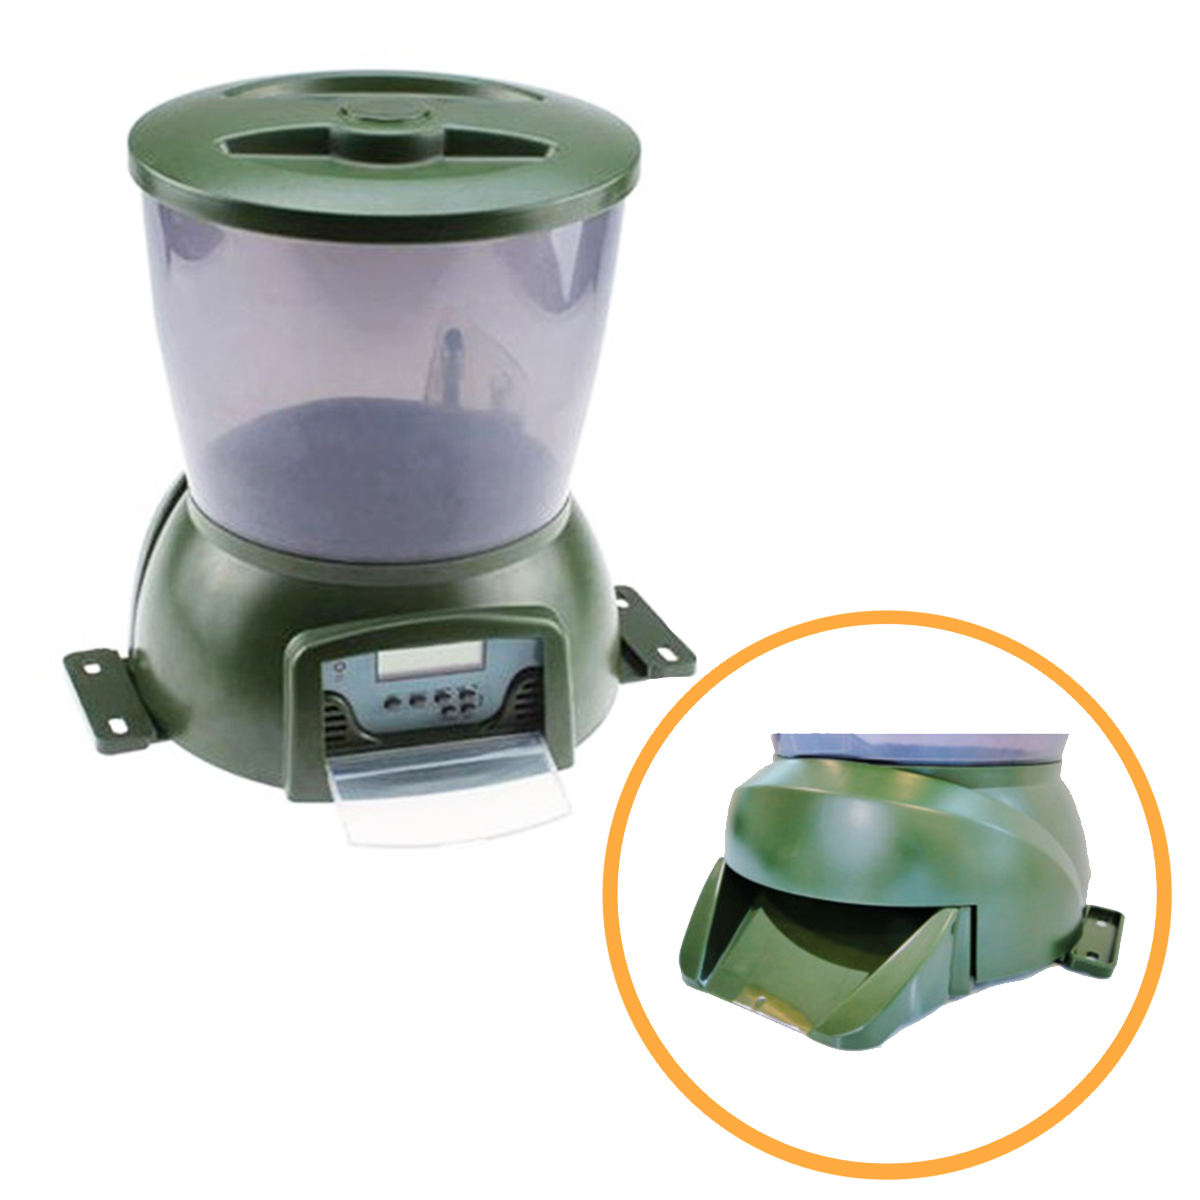 Pisces automatic koi pond fish feeder for Koi auto feeder